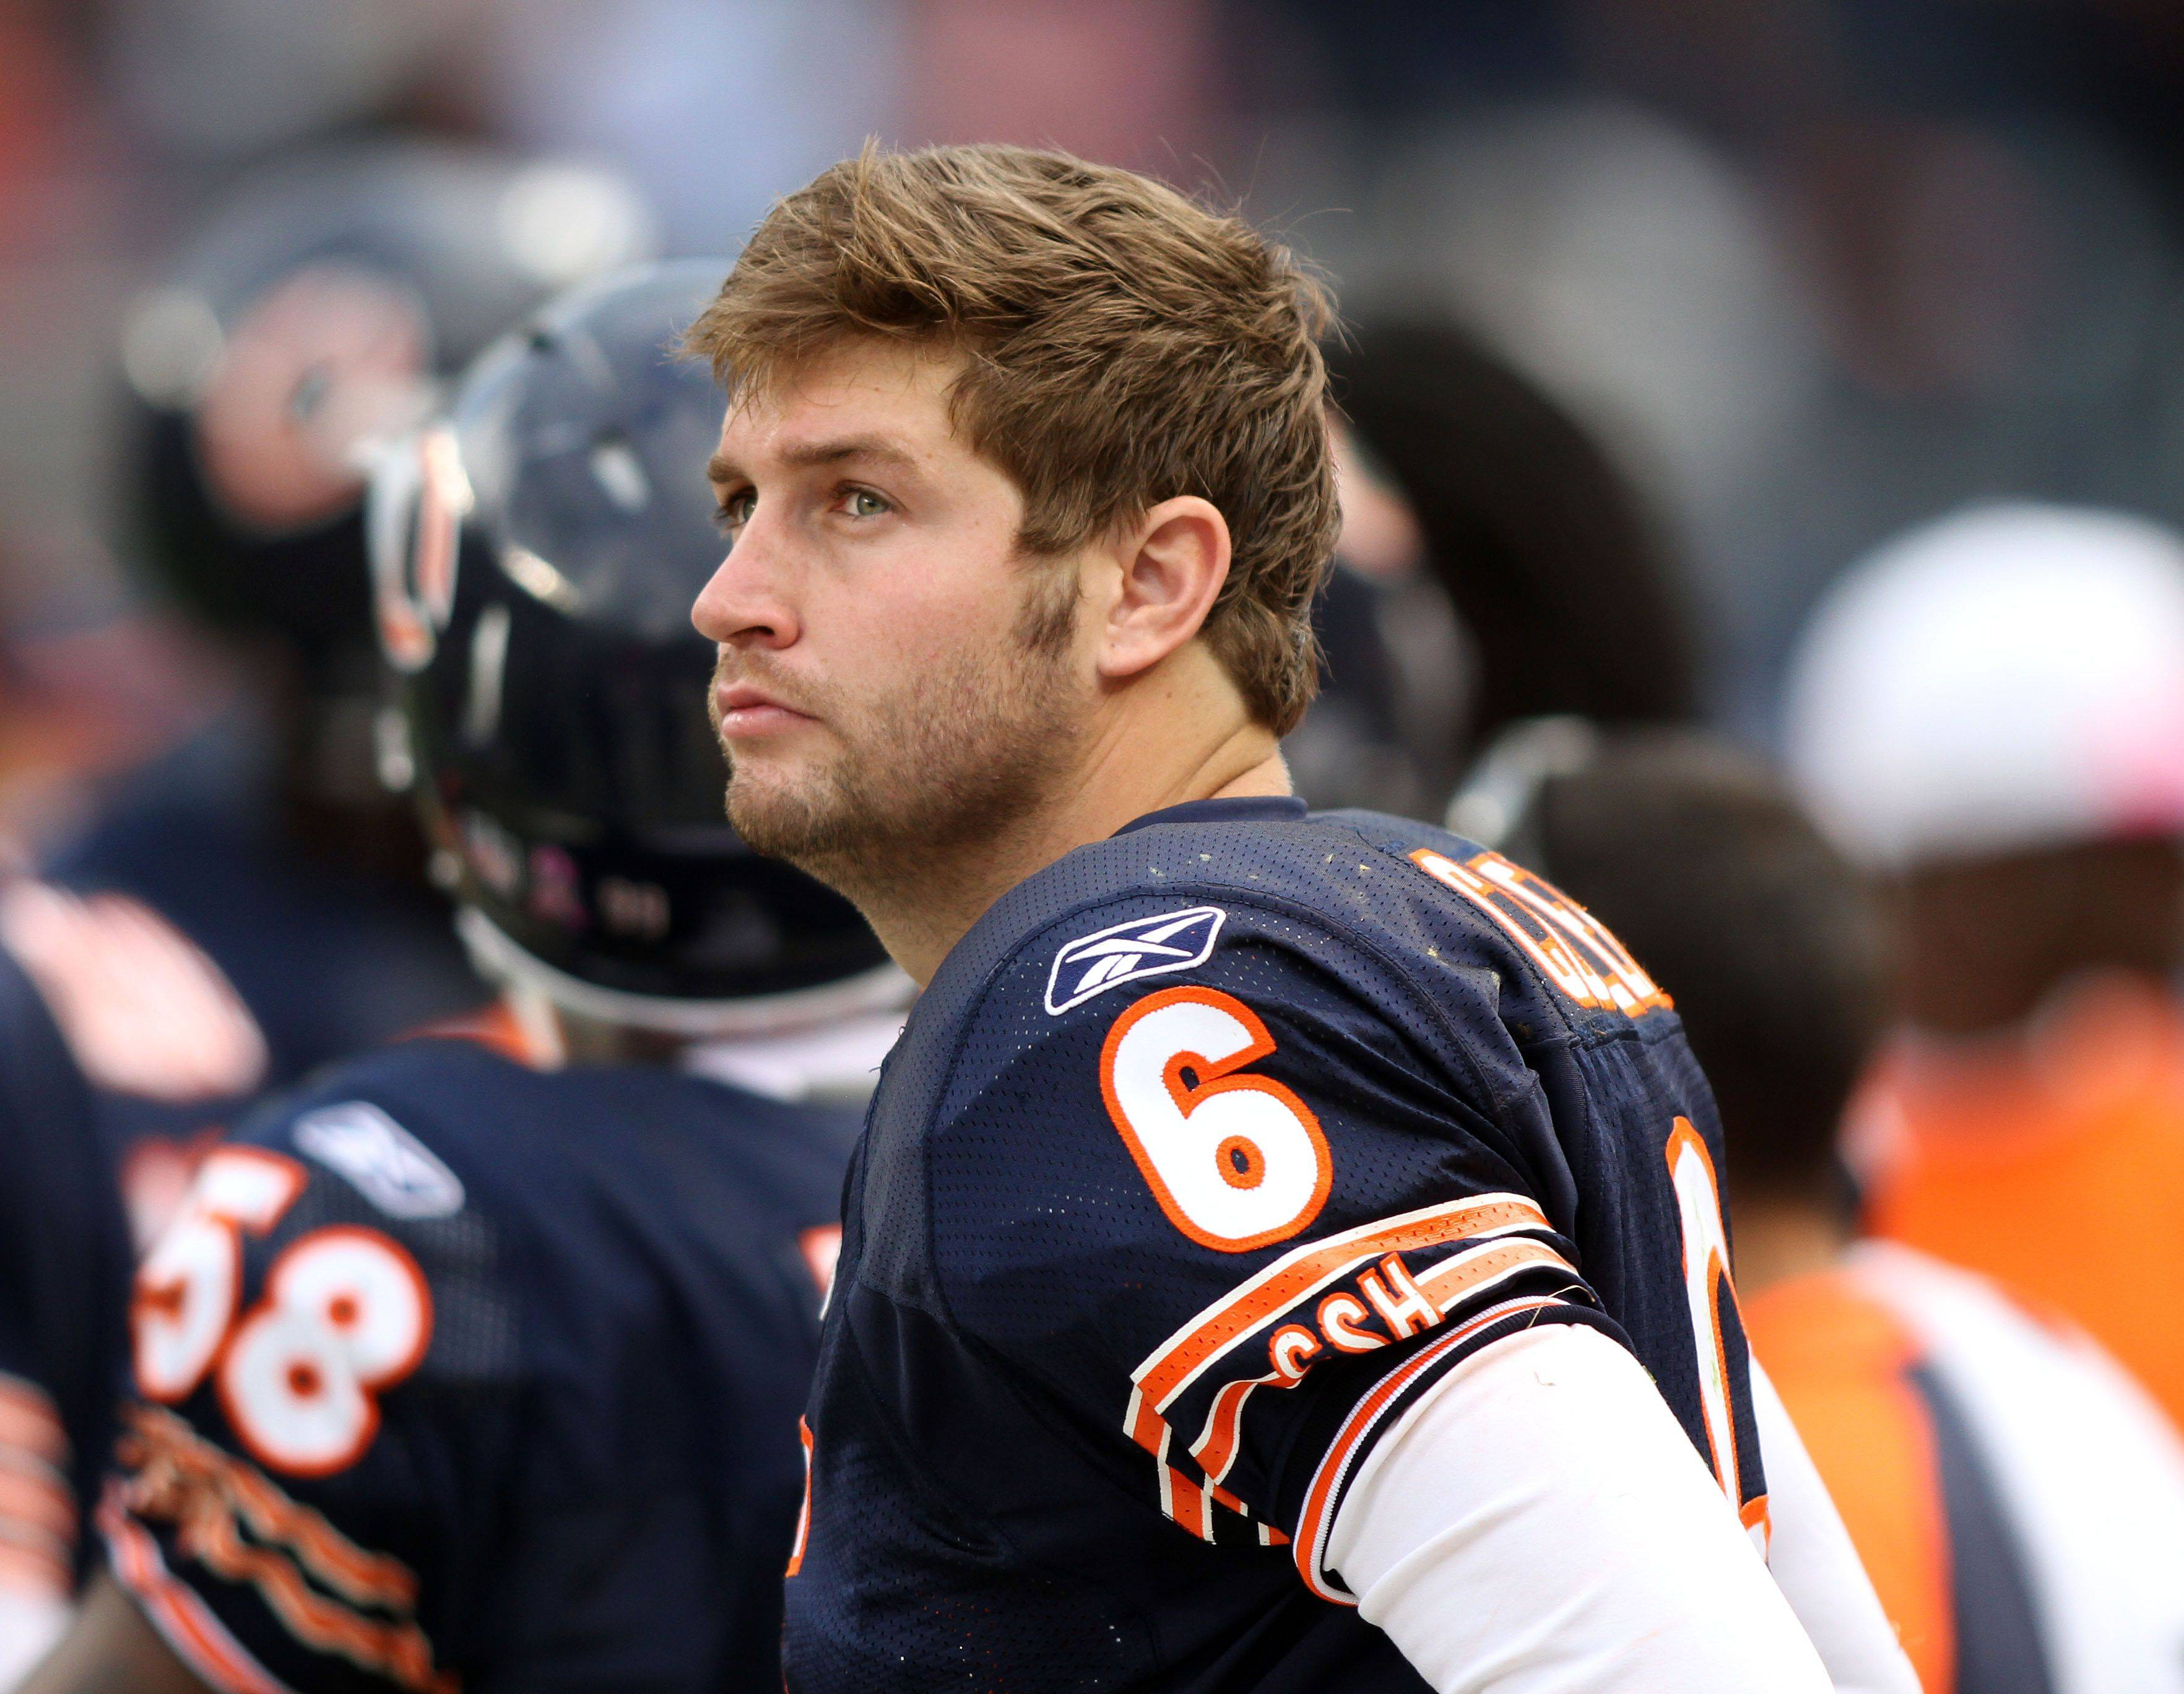 Chicago Bears quarterback Jay Cutler on the sidelines during the Bears' 14-17 loss to the Redskins.